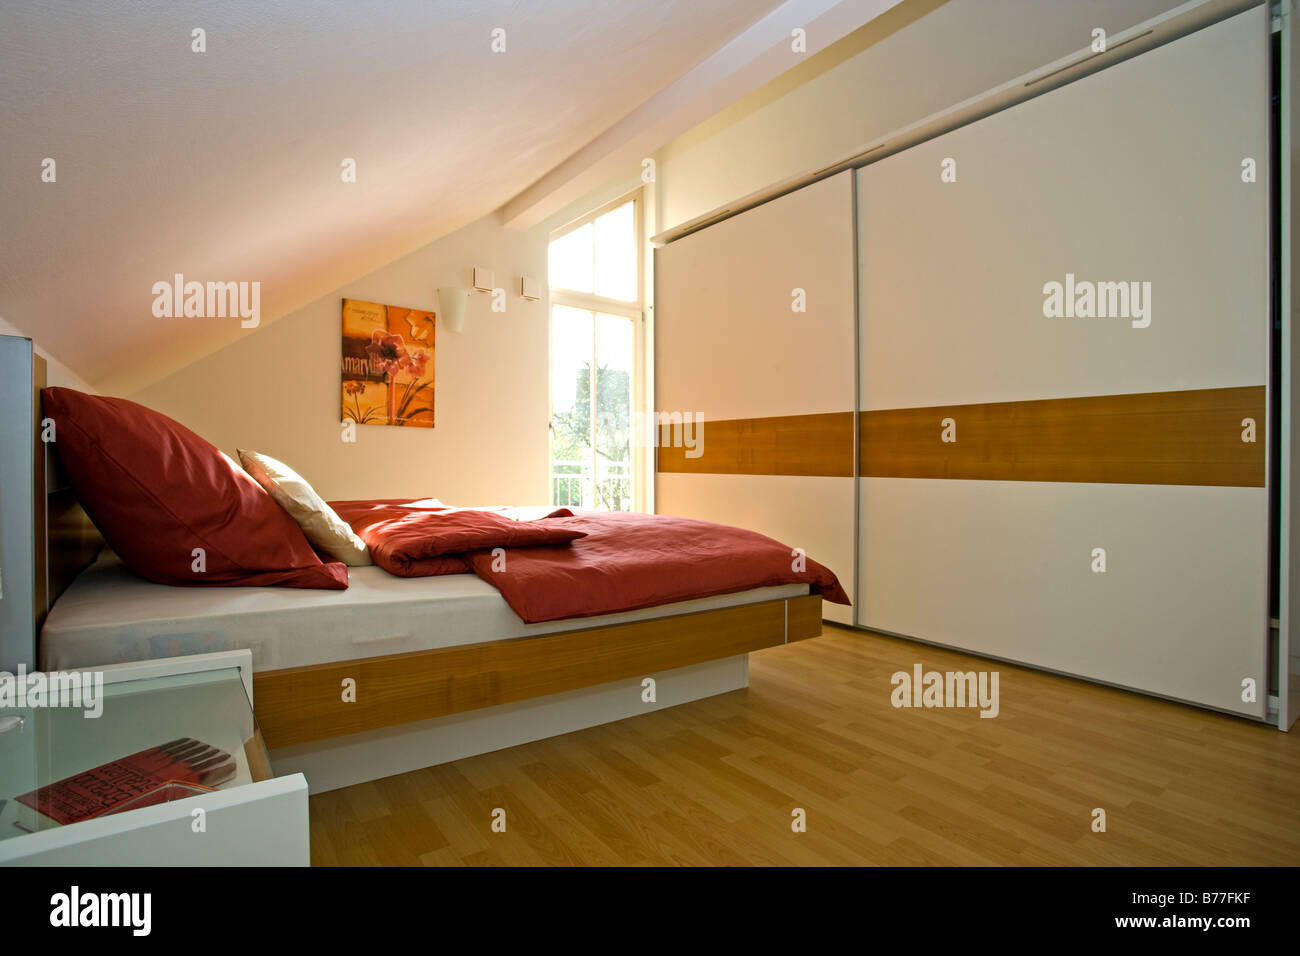 Schlafzimmer Modern Modernes Schlafzimmer Modern Bedroom Stock Photo 21678931 Alamy